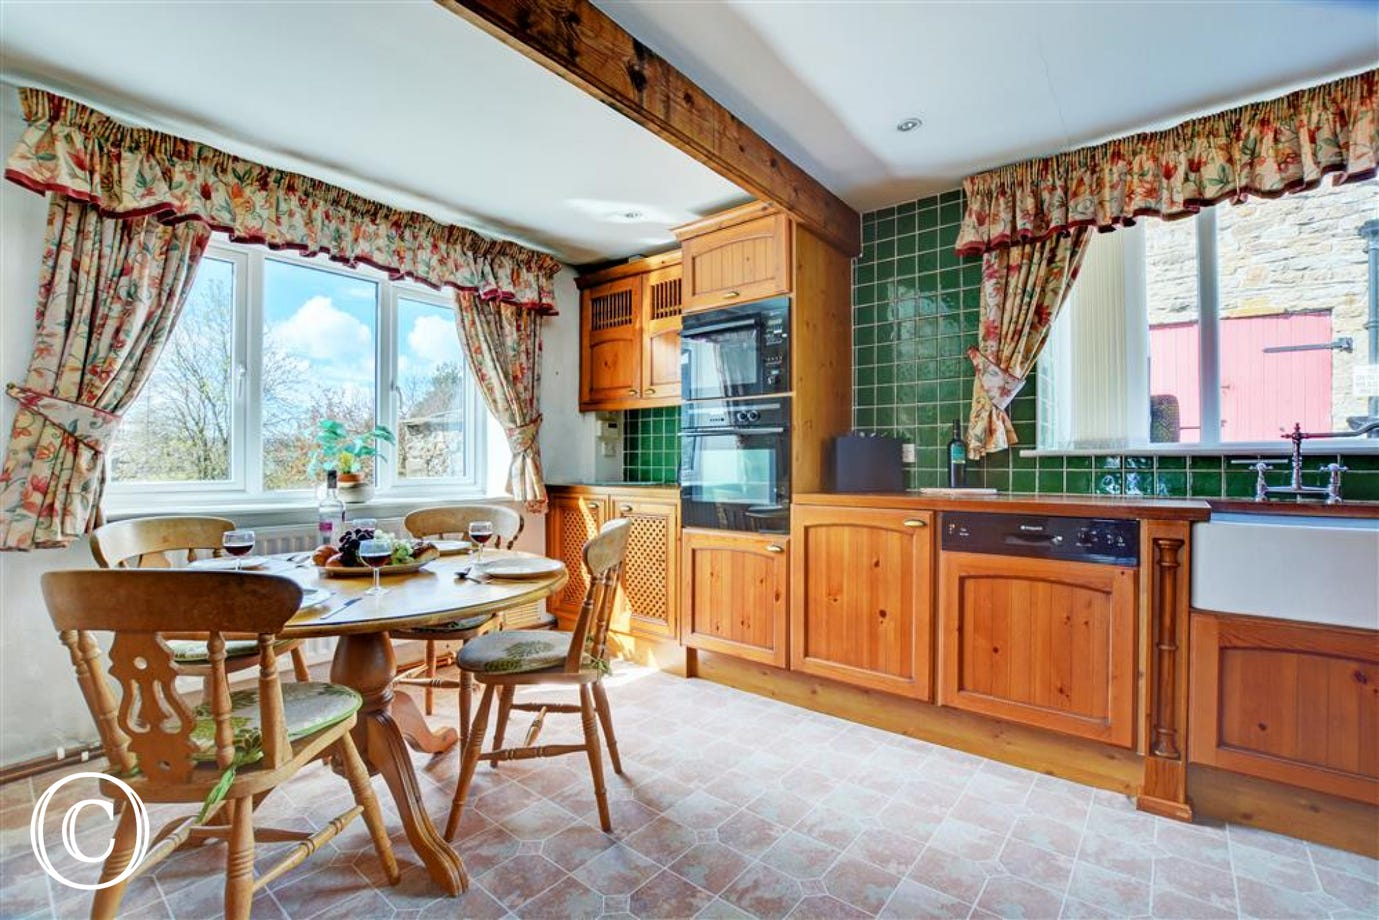 The kitchen and dining area at Orchard Cottage